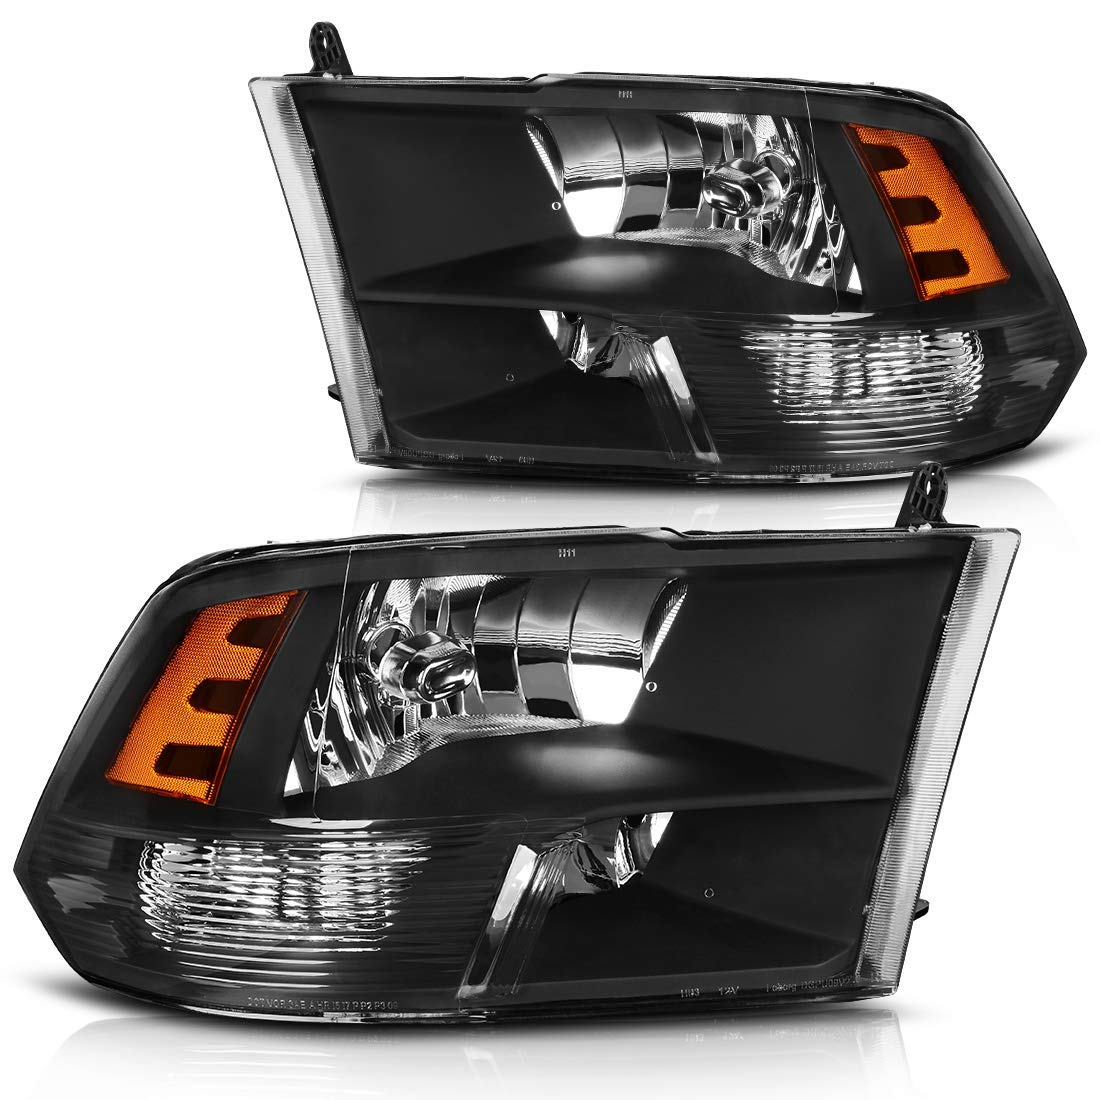 hight resolution of headlight assembly for 2009 2018 dodge ram 1500 2500 3500 pickup headlamp replacement black housing amber reflector 2009 2010 2011 2012 2013 2014 2015 2016